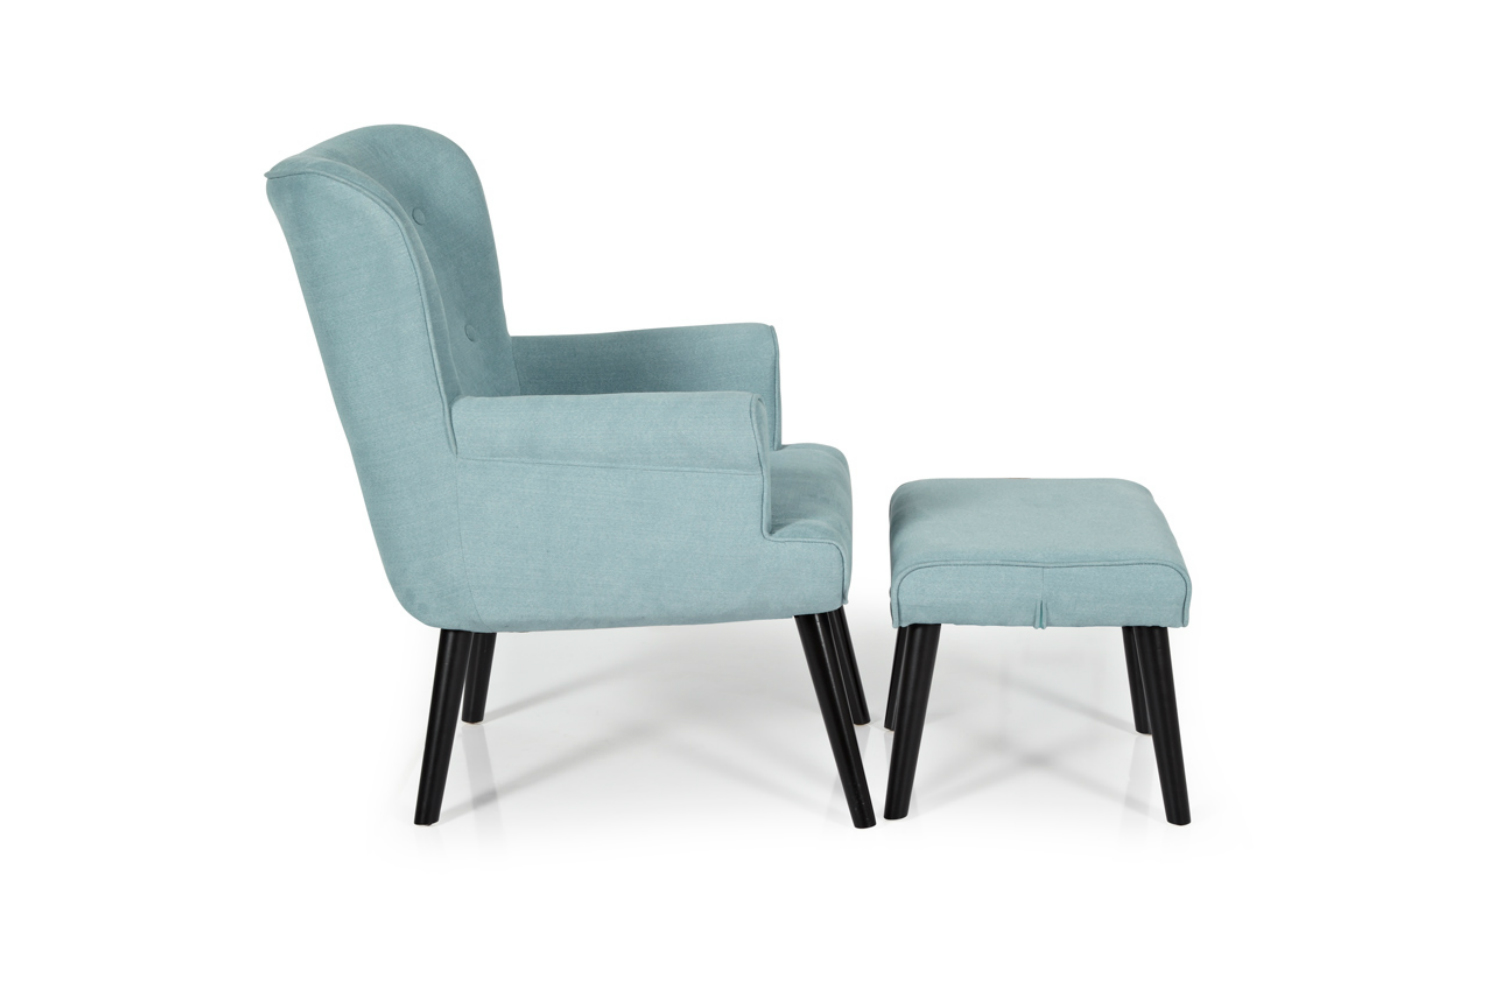 Duck Egg Blue Chair Duck Egg Blue Chair Ireland